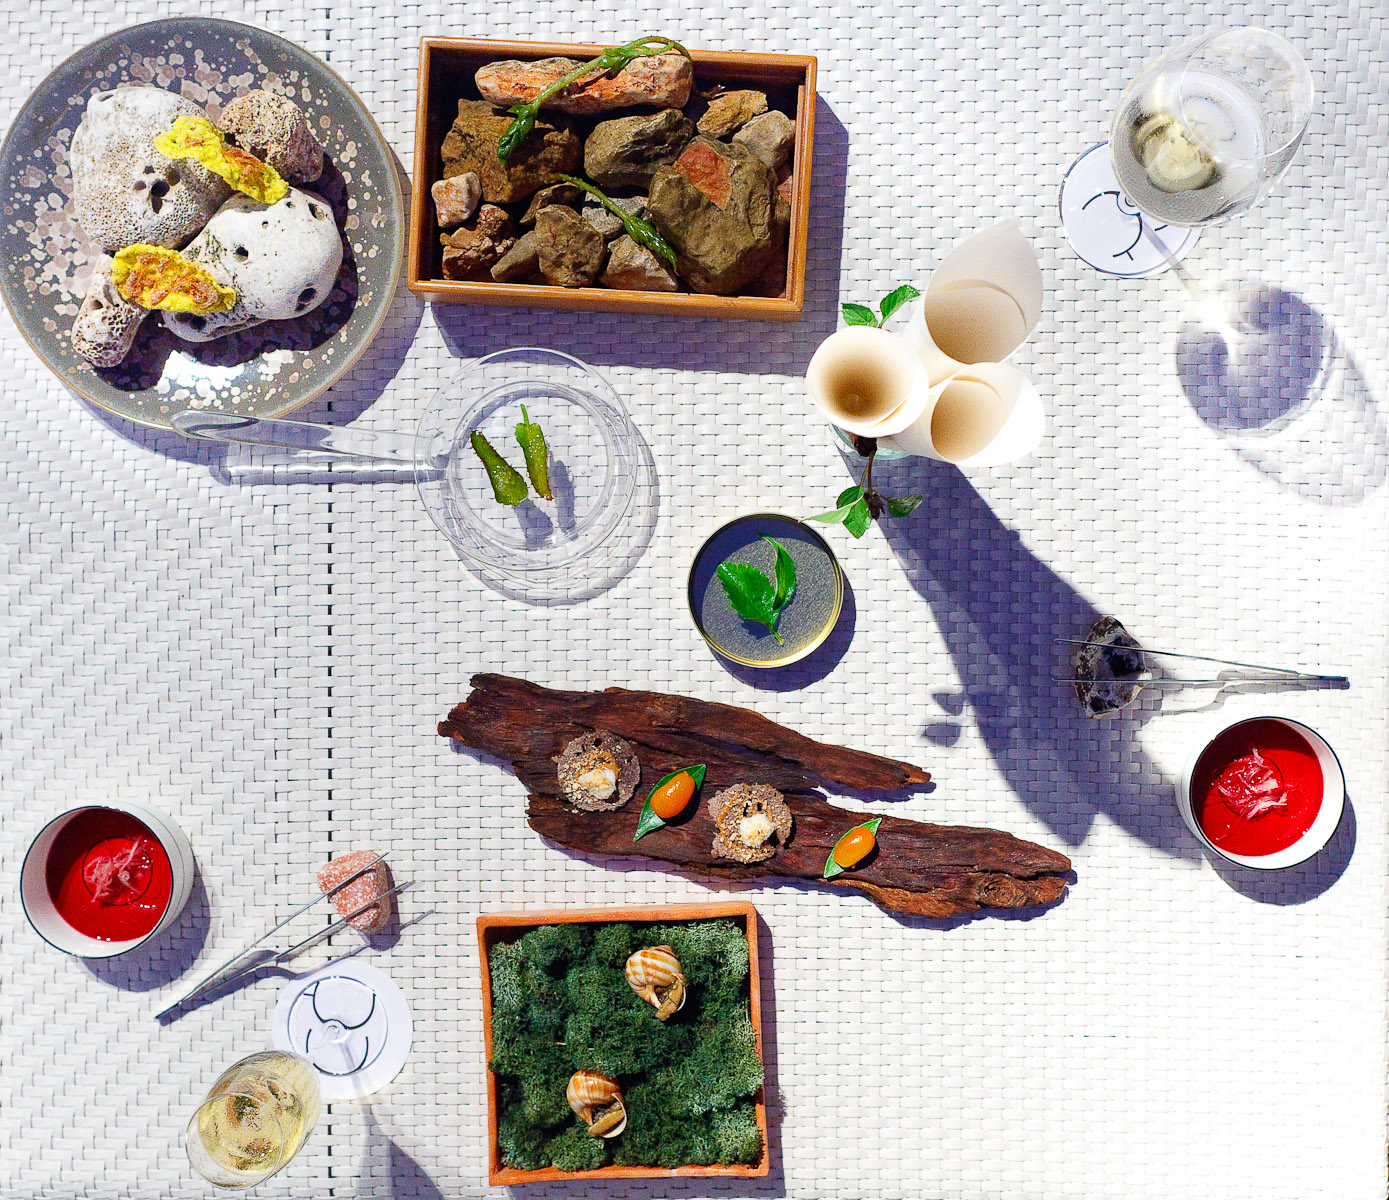 Amuse bouche: Cinnamon basil, Kalanchoe and oil, Cold tea, chicory and hibiscus, Pickled Raïm of pastor, Snail, Shrimp cake with Hazelnut oil, Kumquat with flying fish eggs